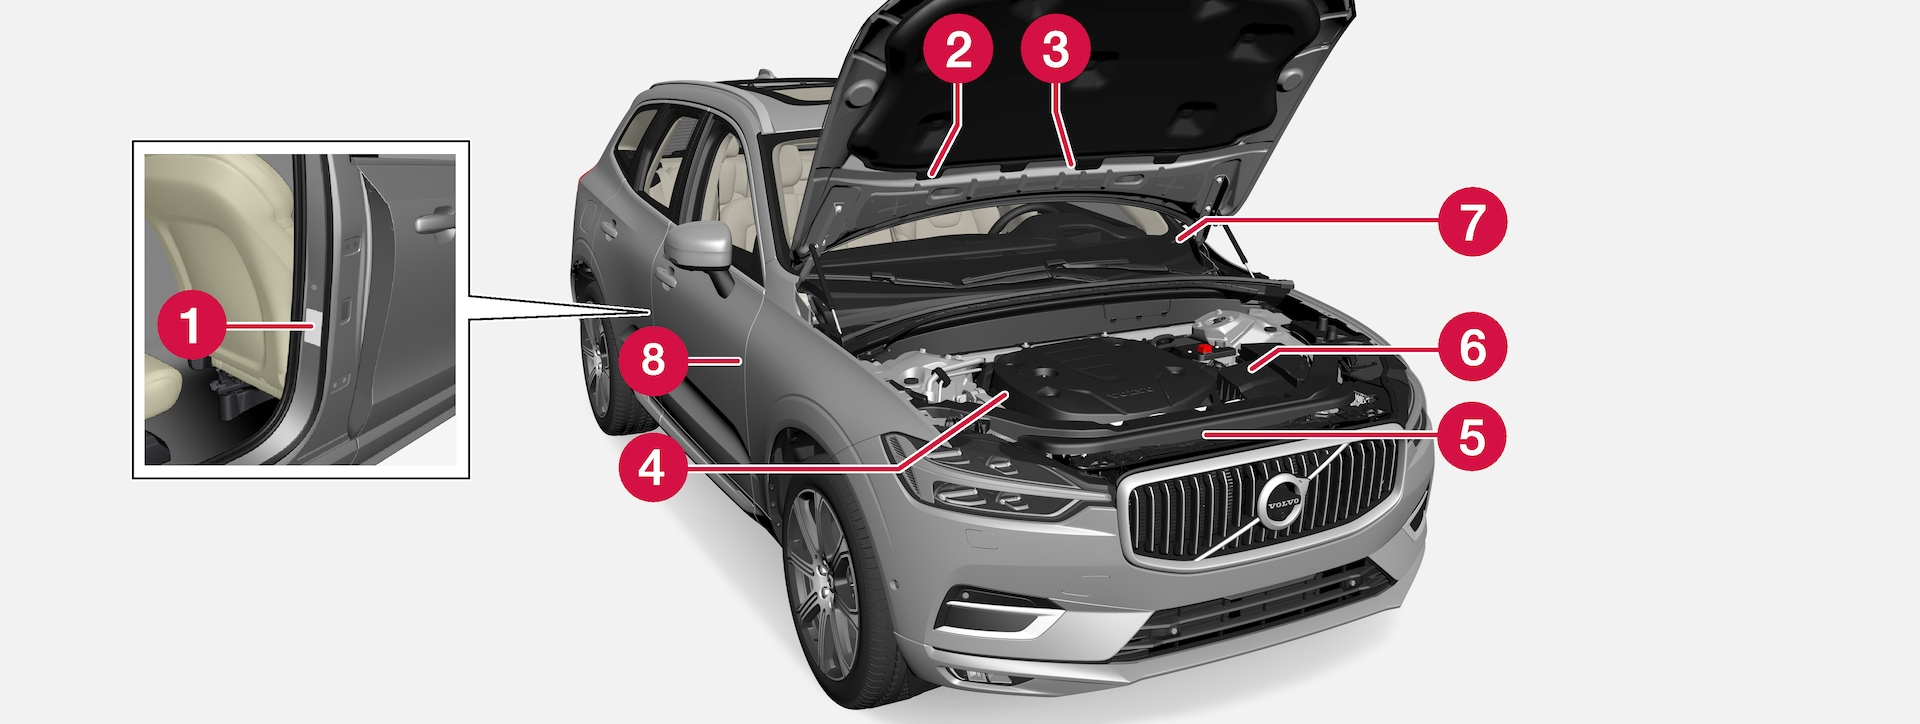 P5-1846-XC60-Type approval, labels, vehicles imported to China